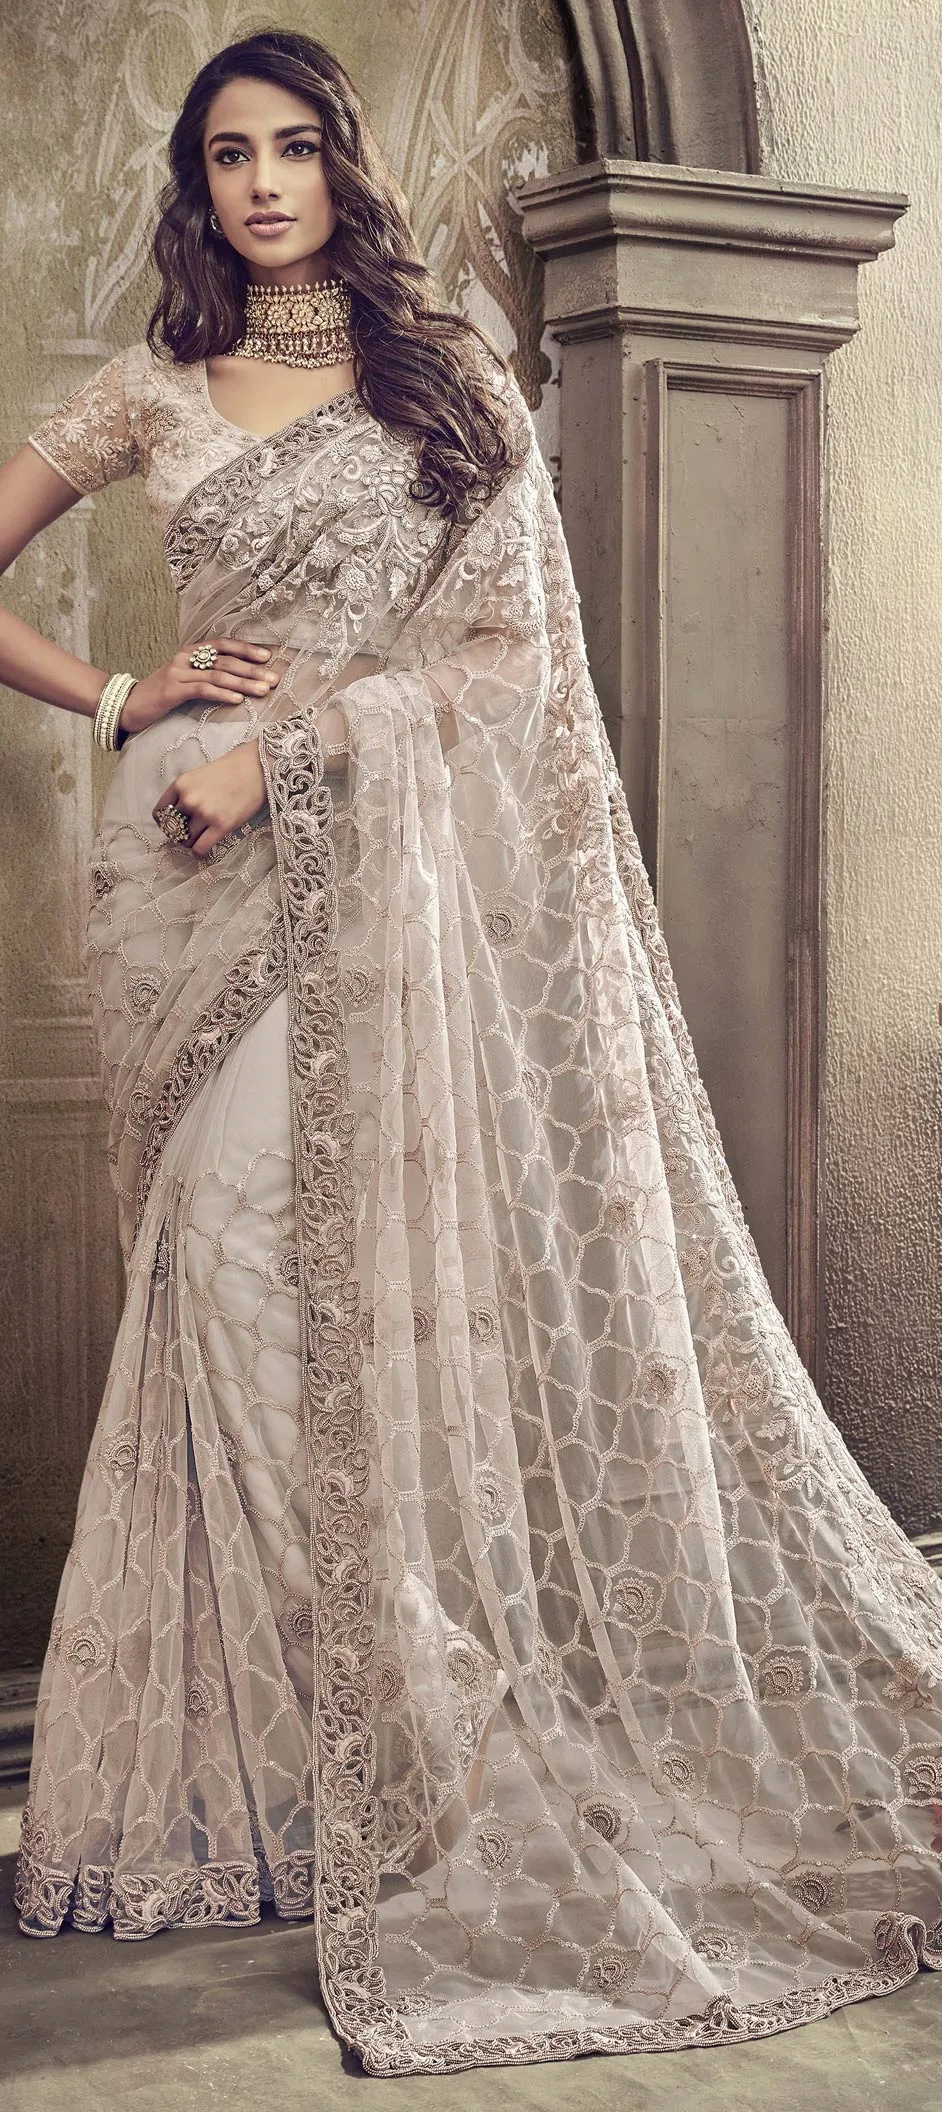 Bridal, Wedding White and Off White color Net fabric Saree : 1561930